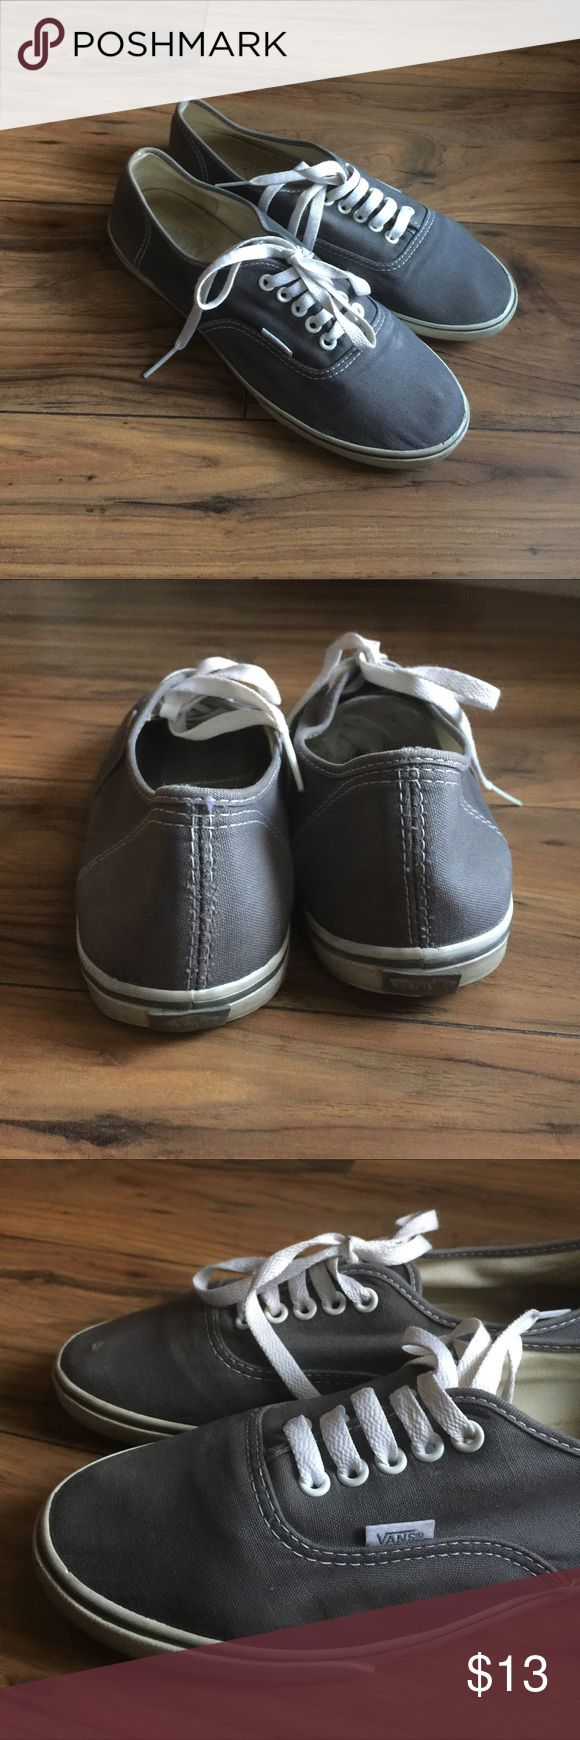 Vans Lo Pro Skate Shoes canvas upper and signature gum rubber waffle outsole.  Right show has small scratch as seen in picture Vans Shoes Sneakers